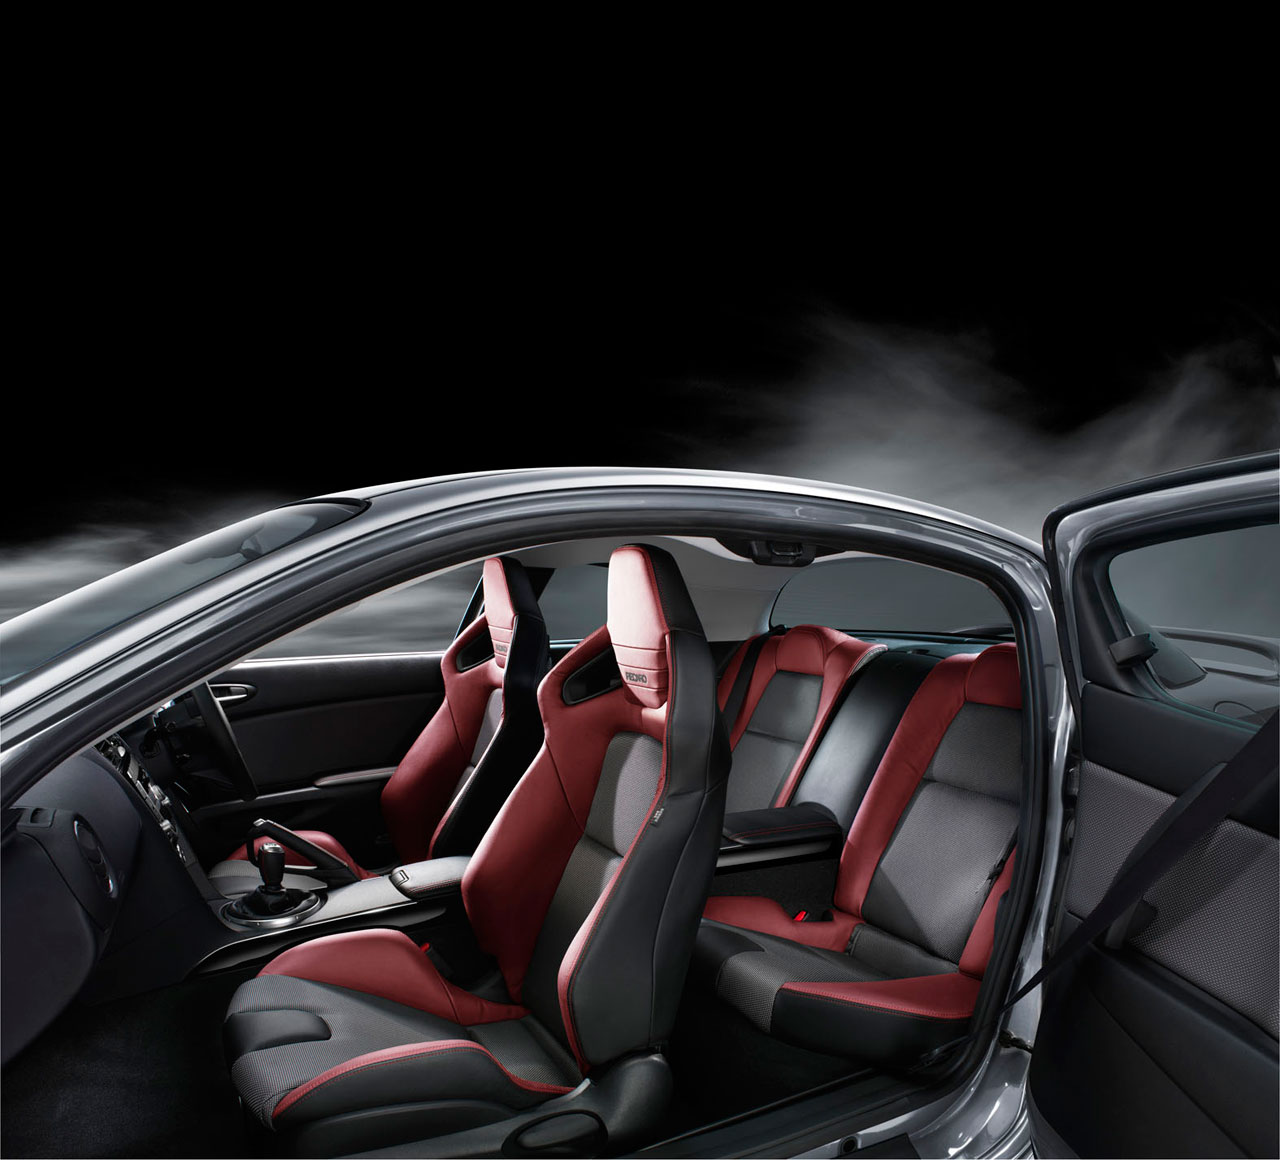 2011 Mazda Rx 8 Camshaft: Mazda RX-8 Spirit R Will Be Last Special Edition Before